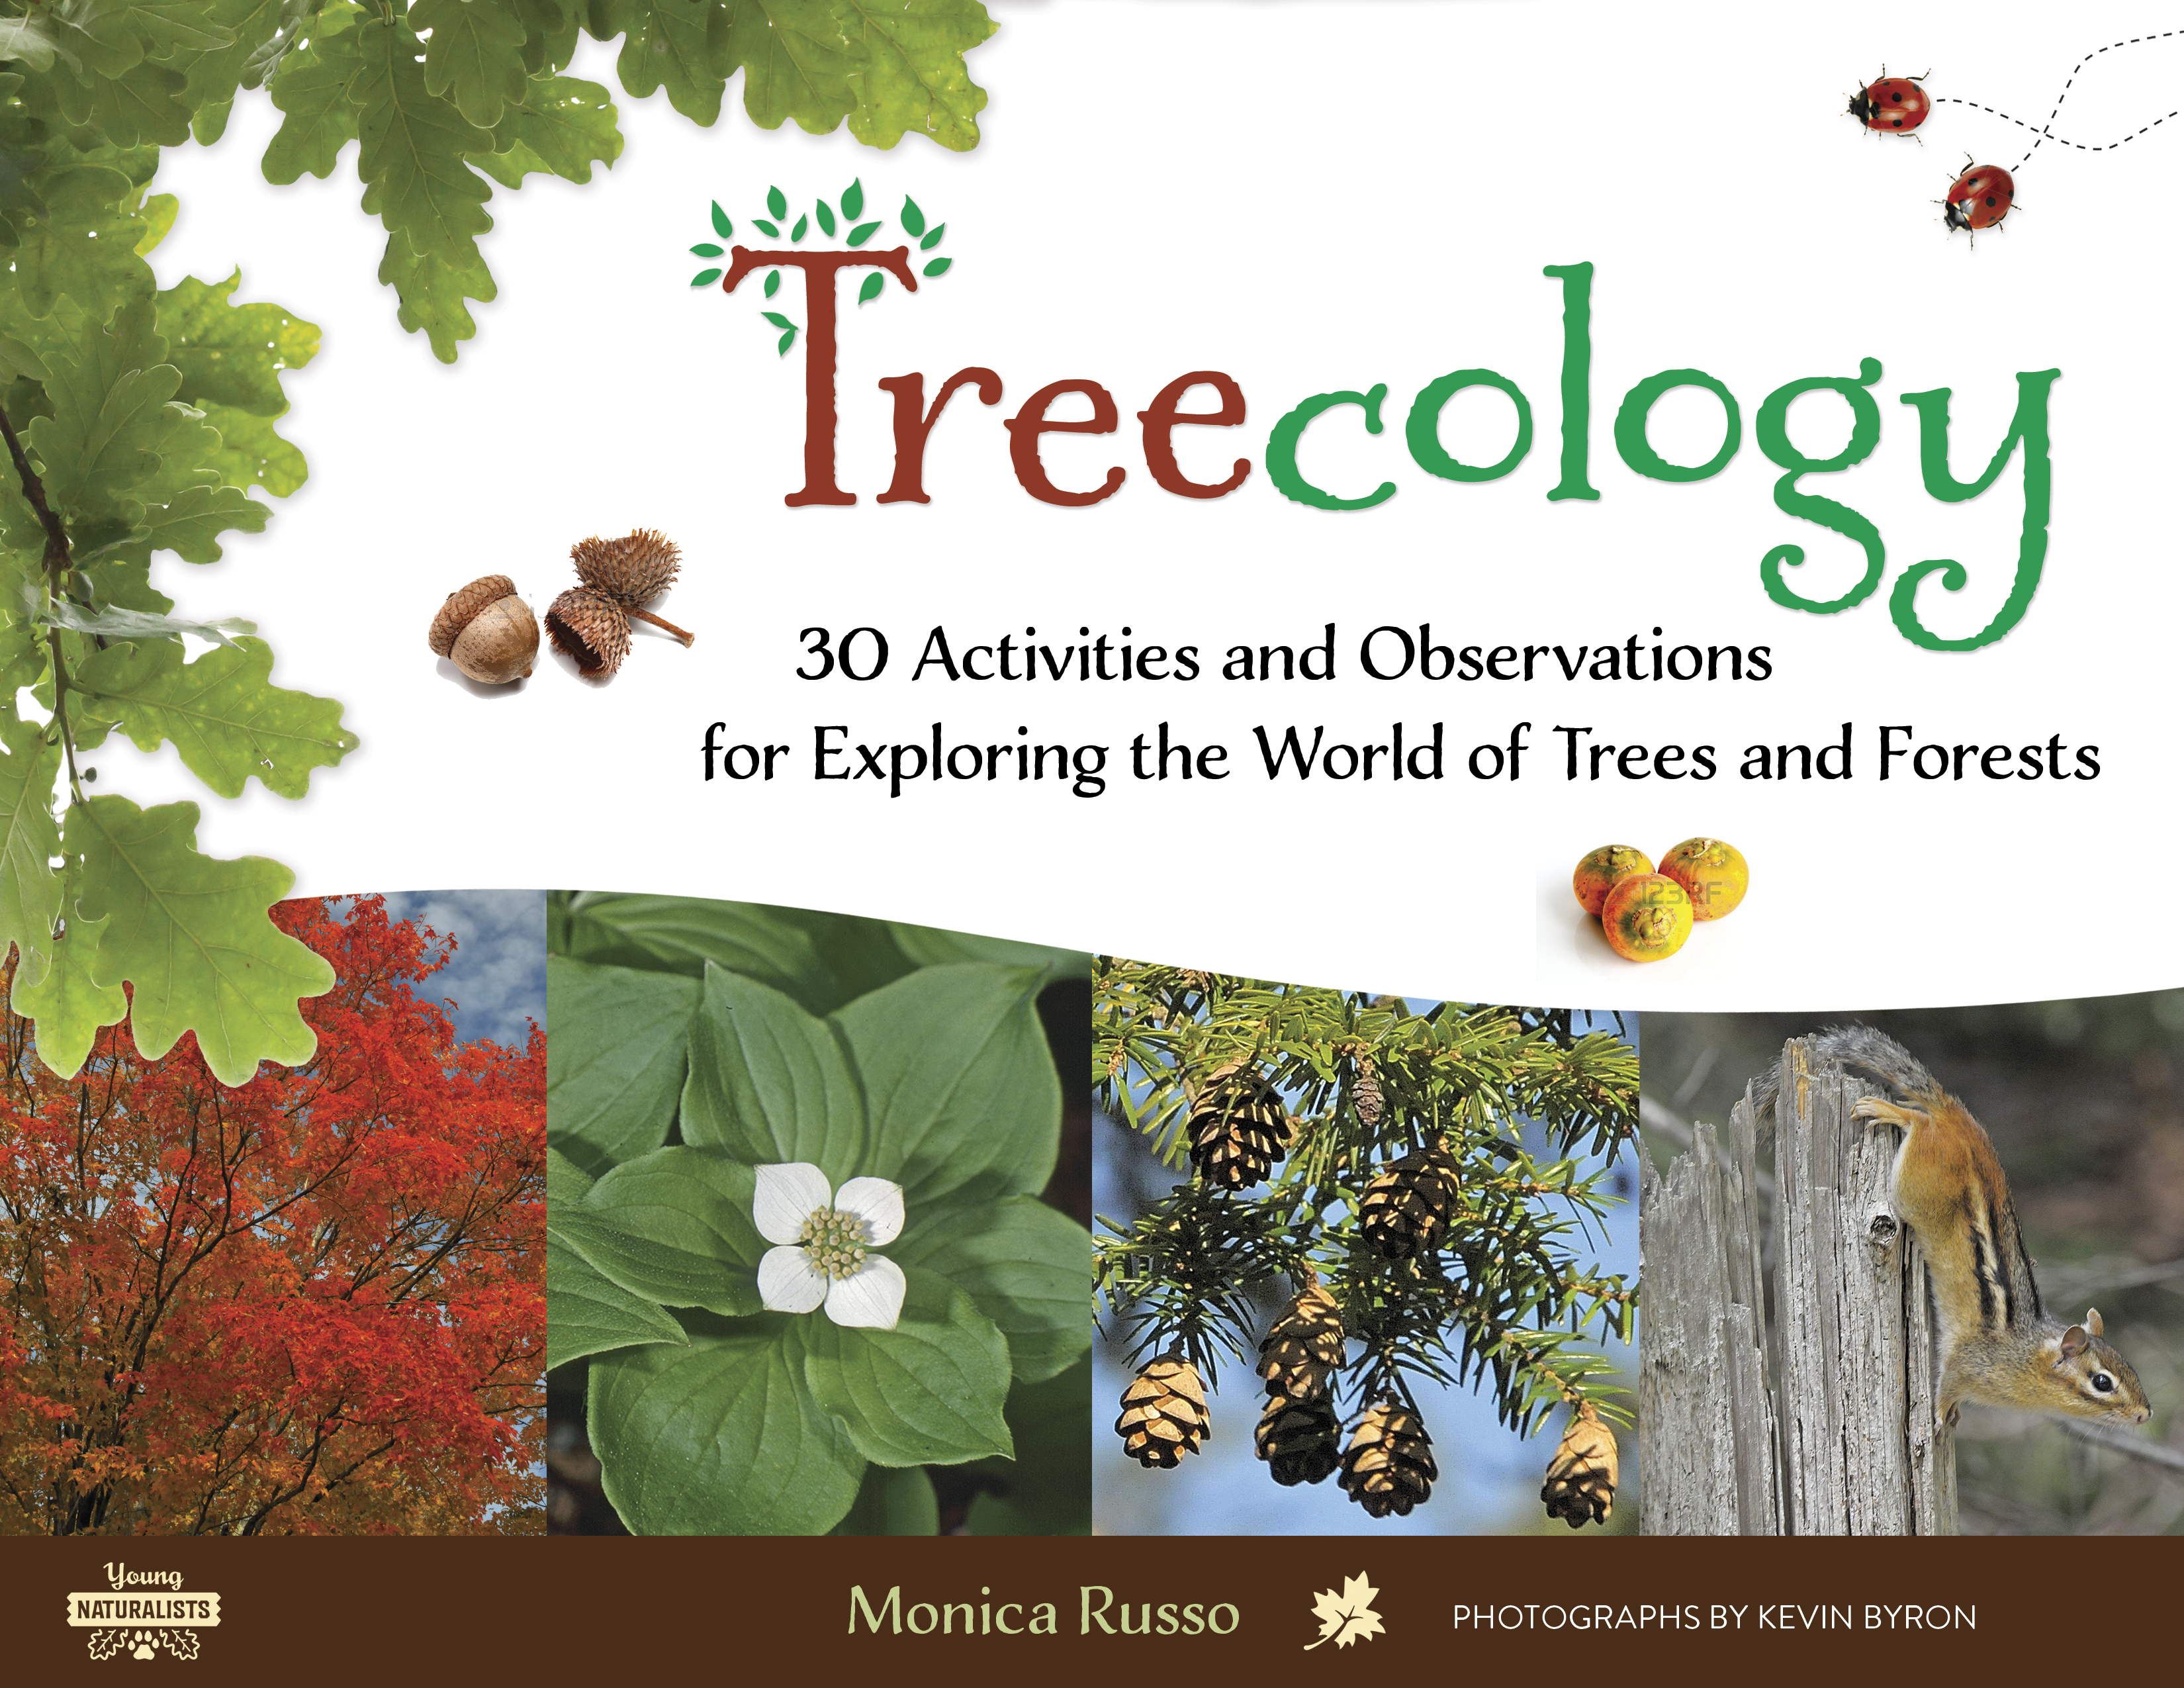 Book Review: Treecology by Monica Russo